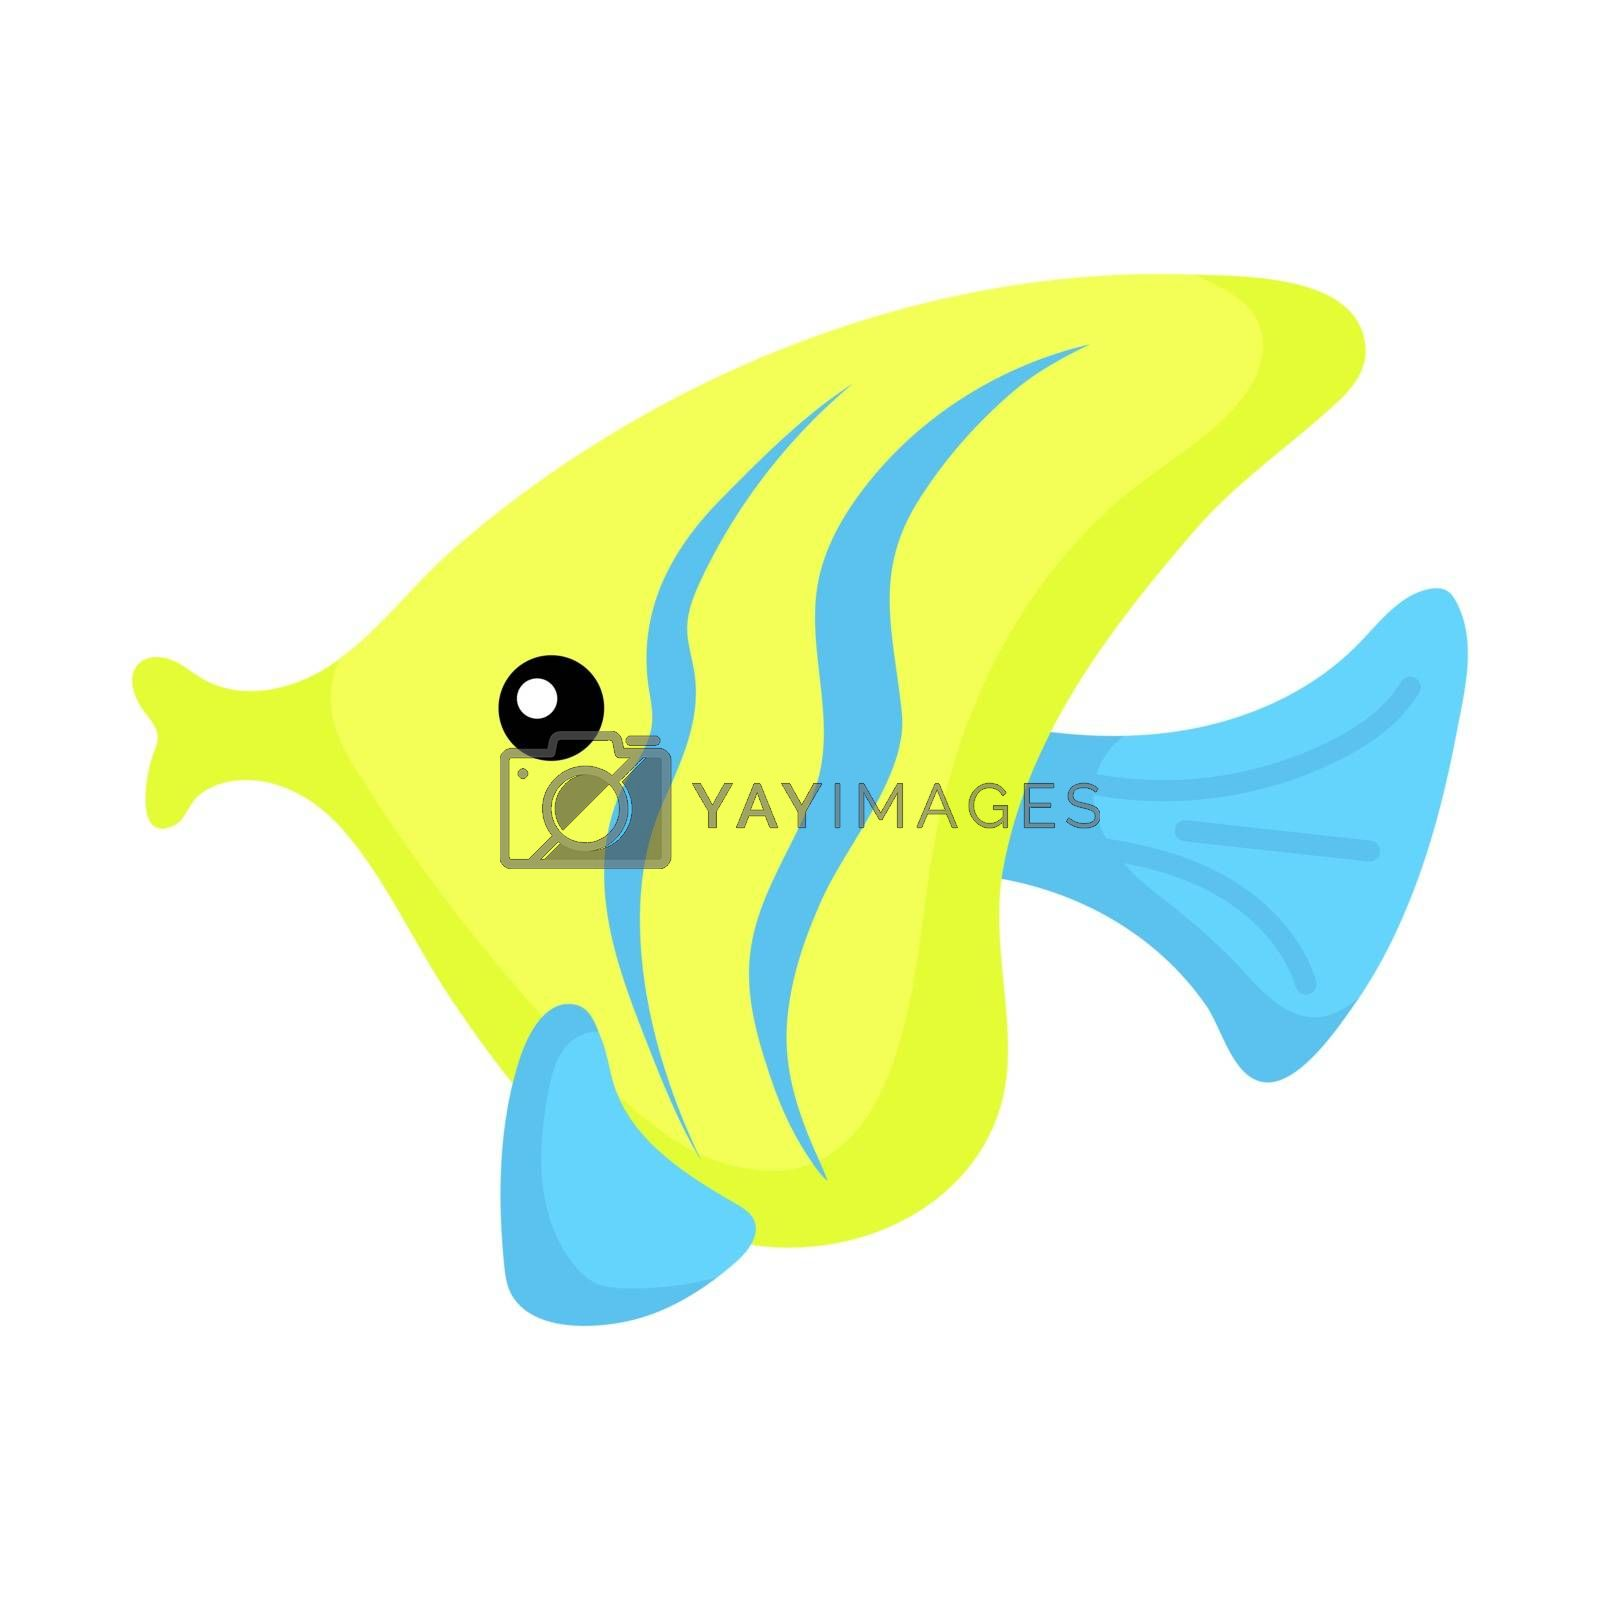 Royalty free image of Cute funny yellow fish print on white background. Ocean cartoon  by Melnyk